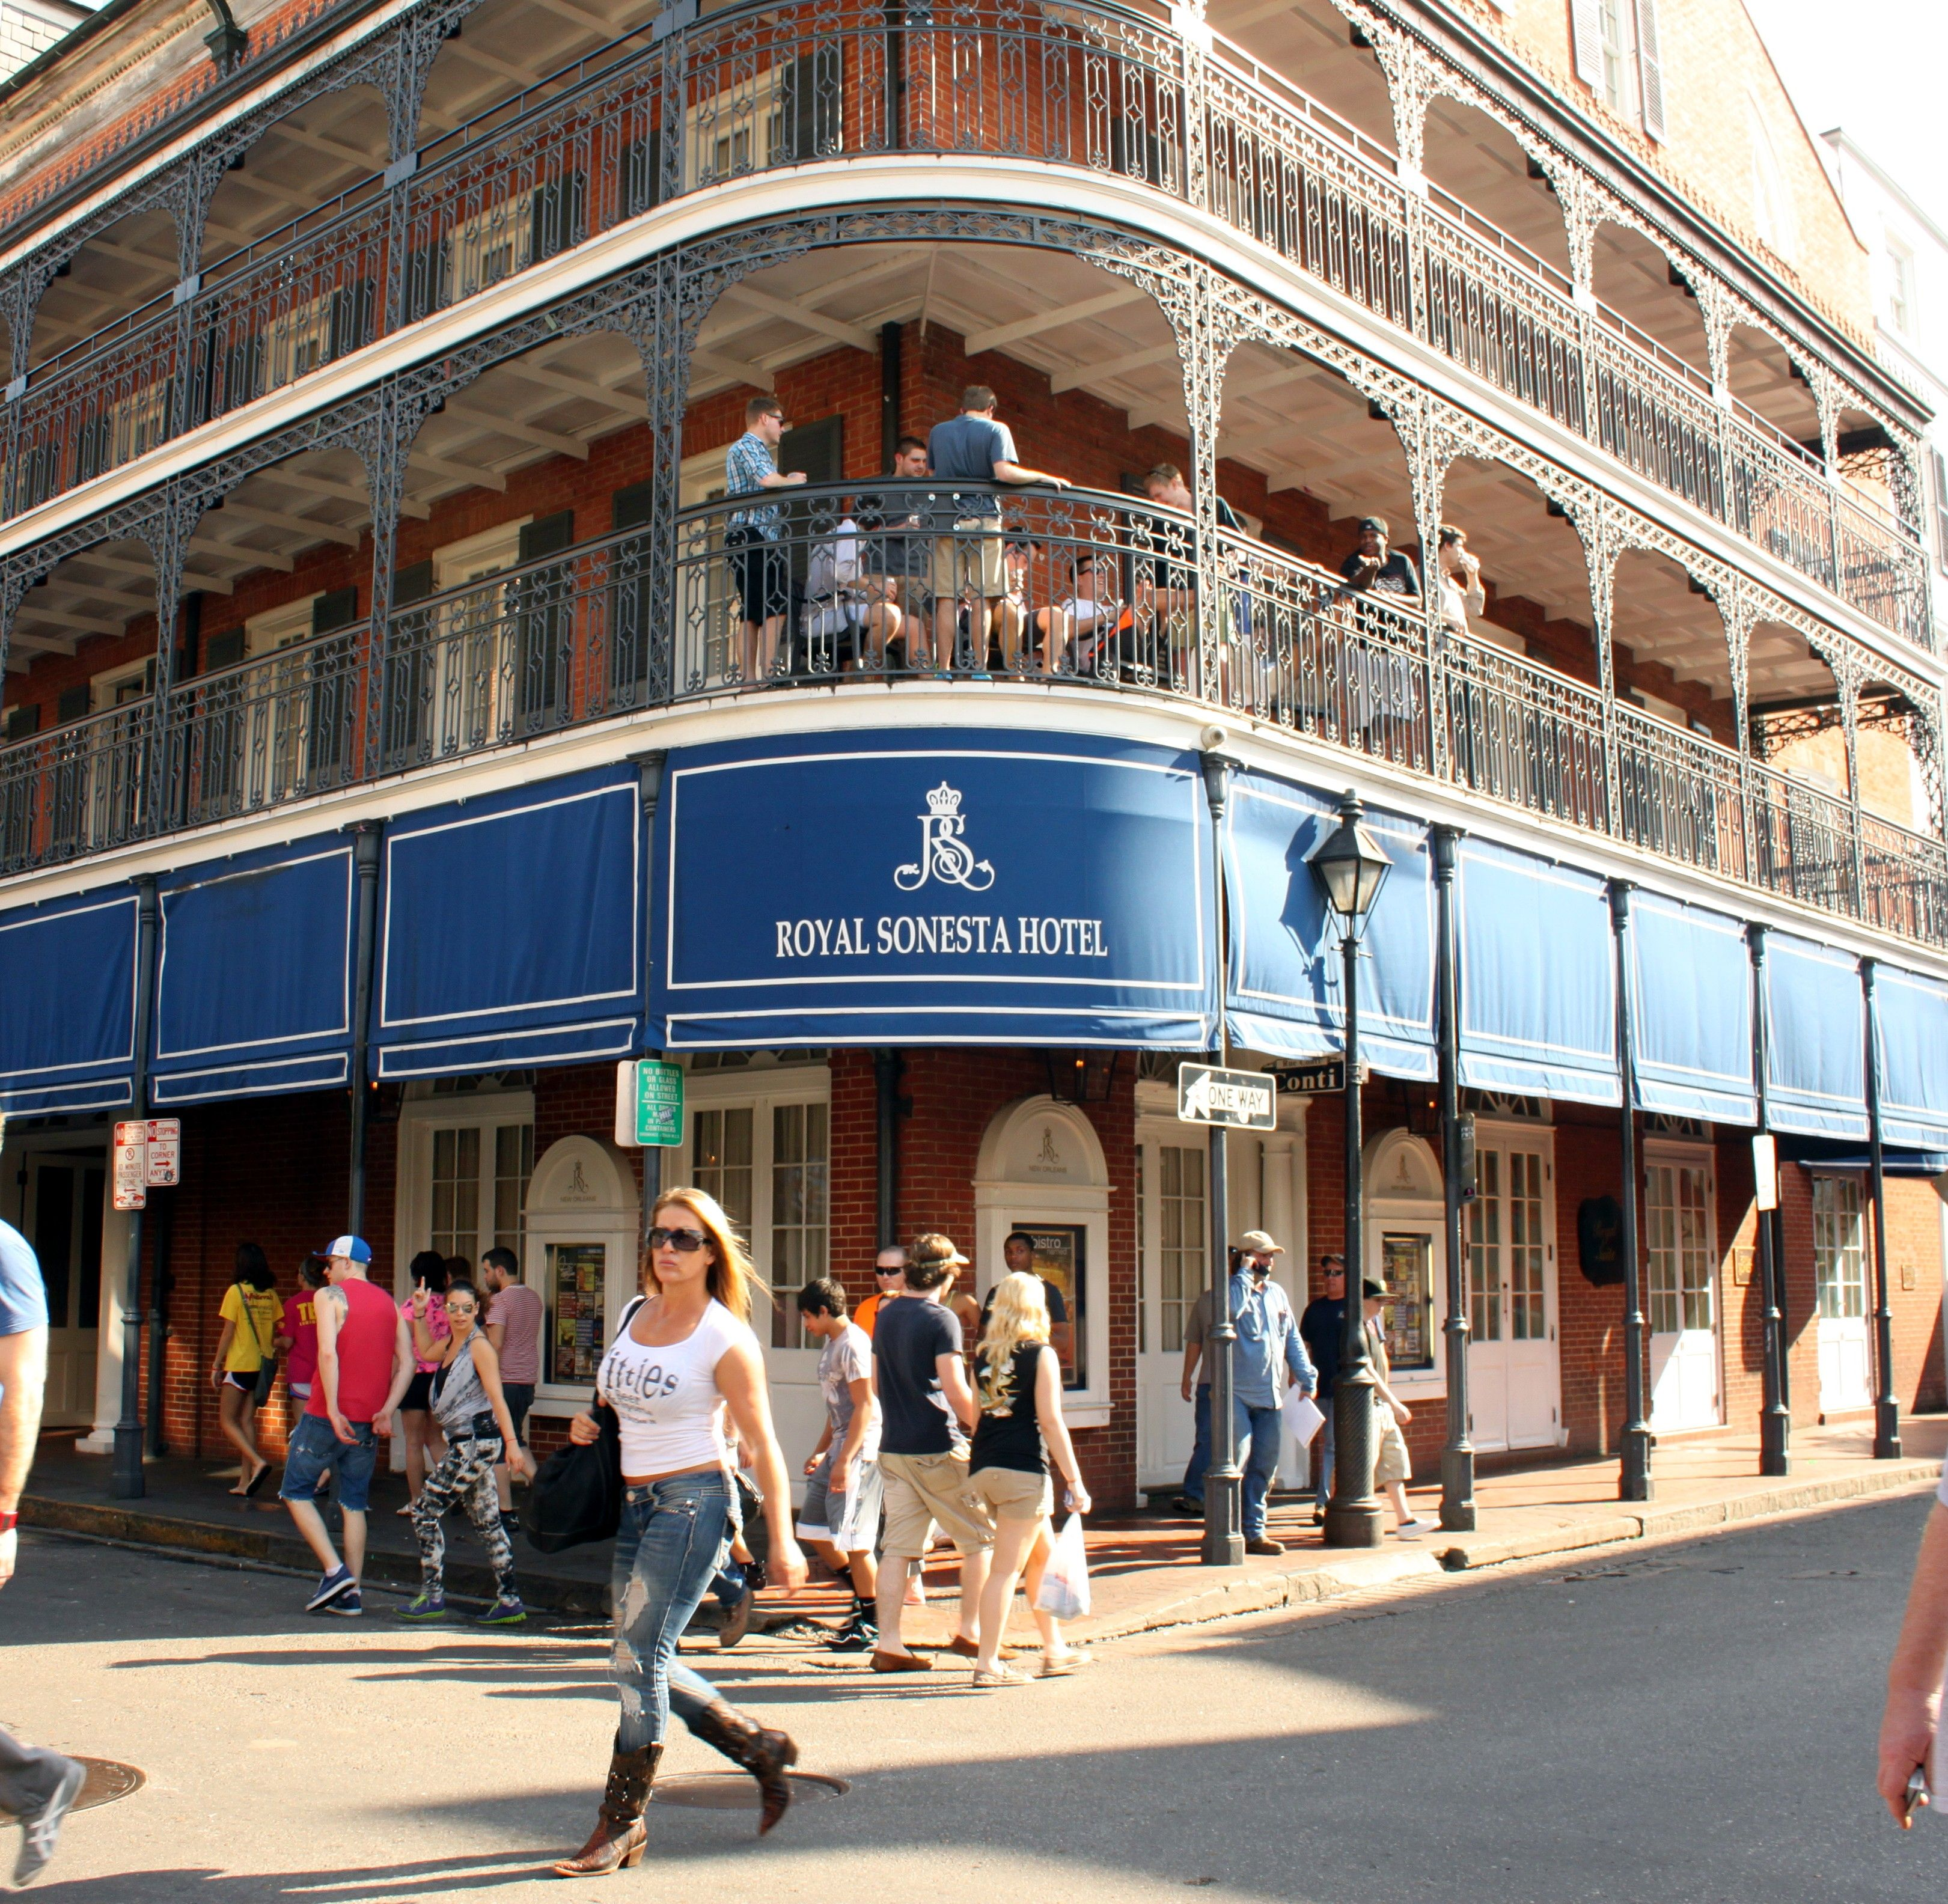 French Quarter New Orleans Hotels Sonesta Hotel In We Stay Here And